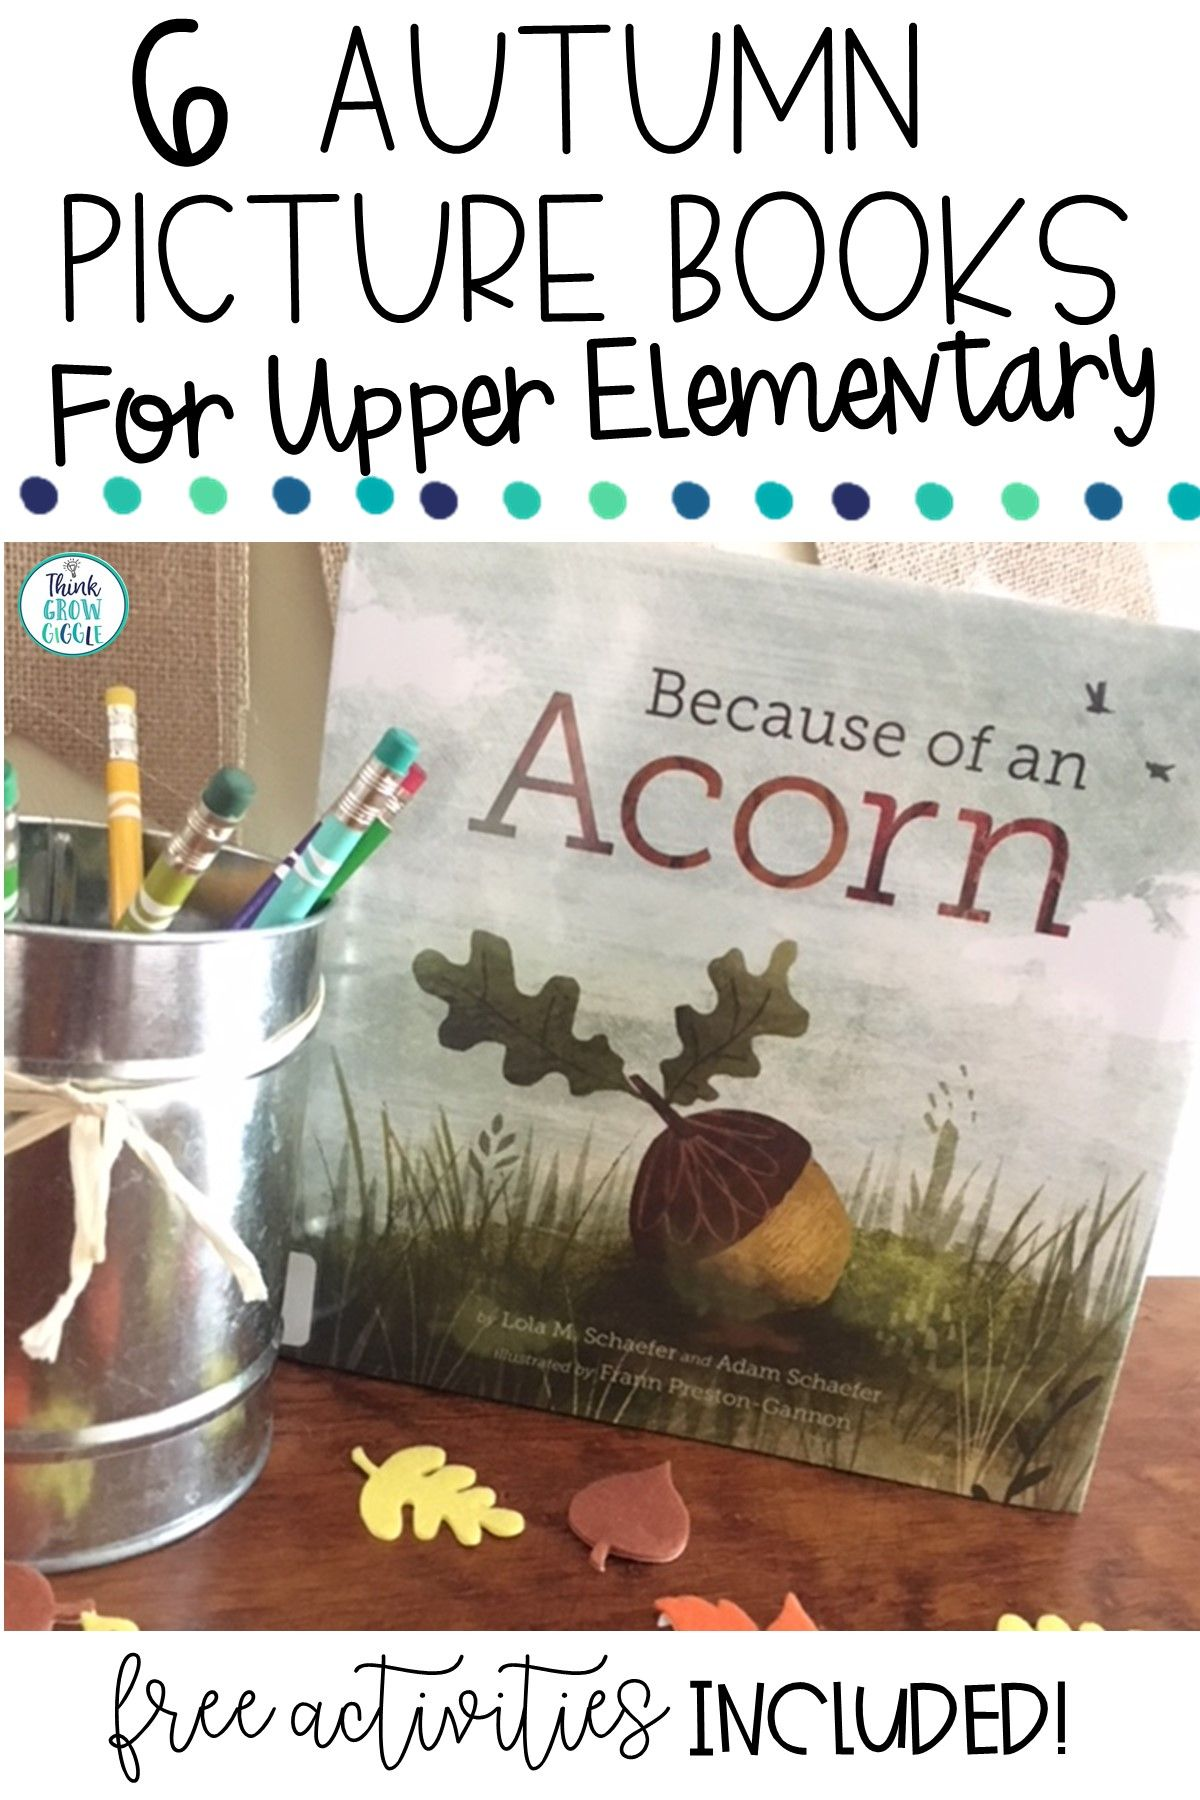 6 Autumn Picture Books For Upper Elementary Classrooms